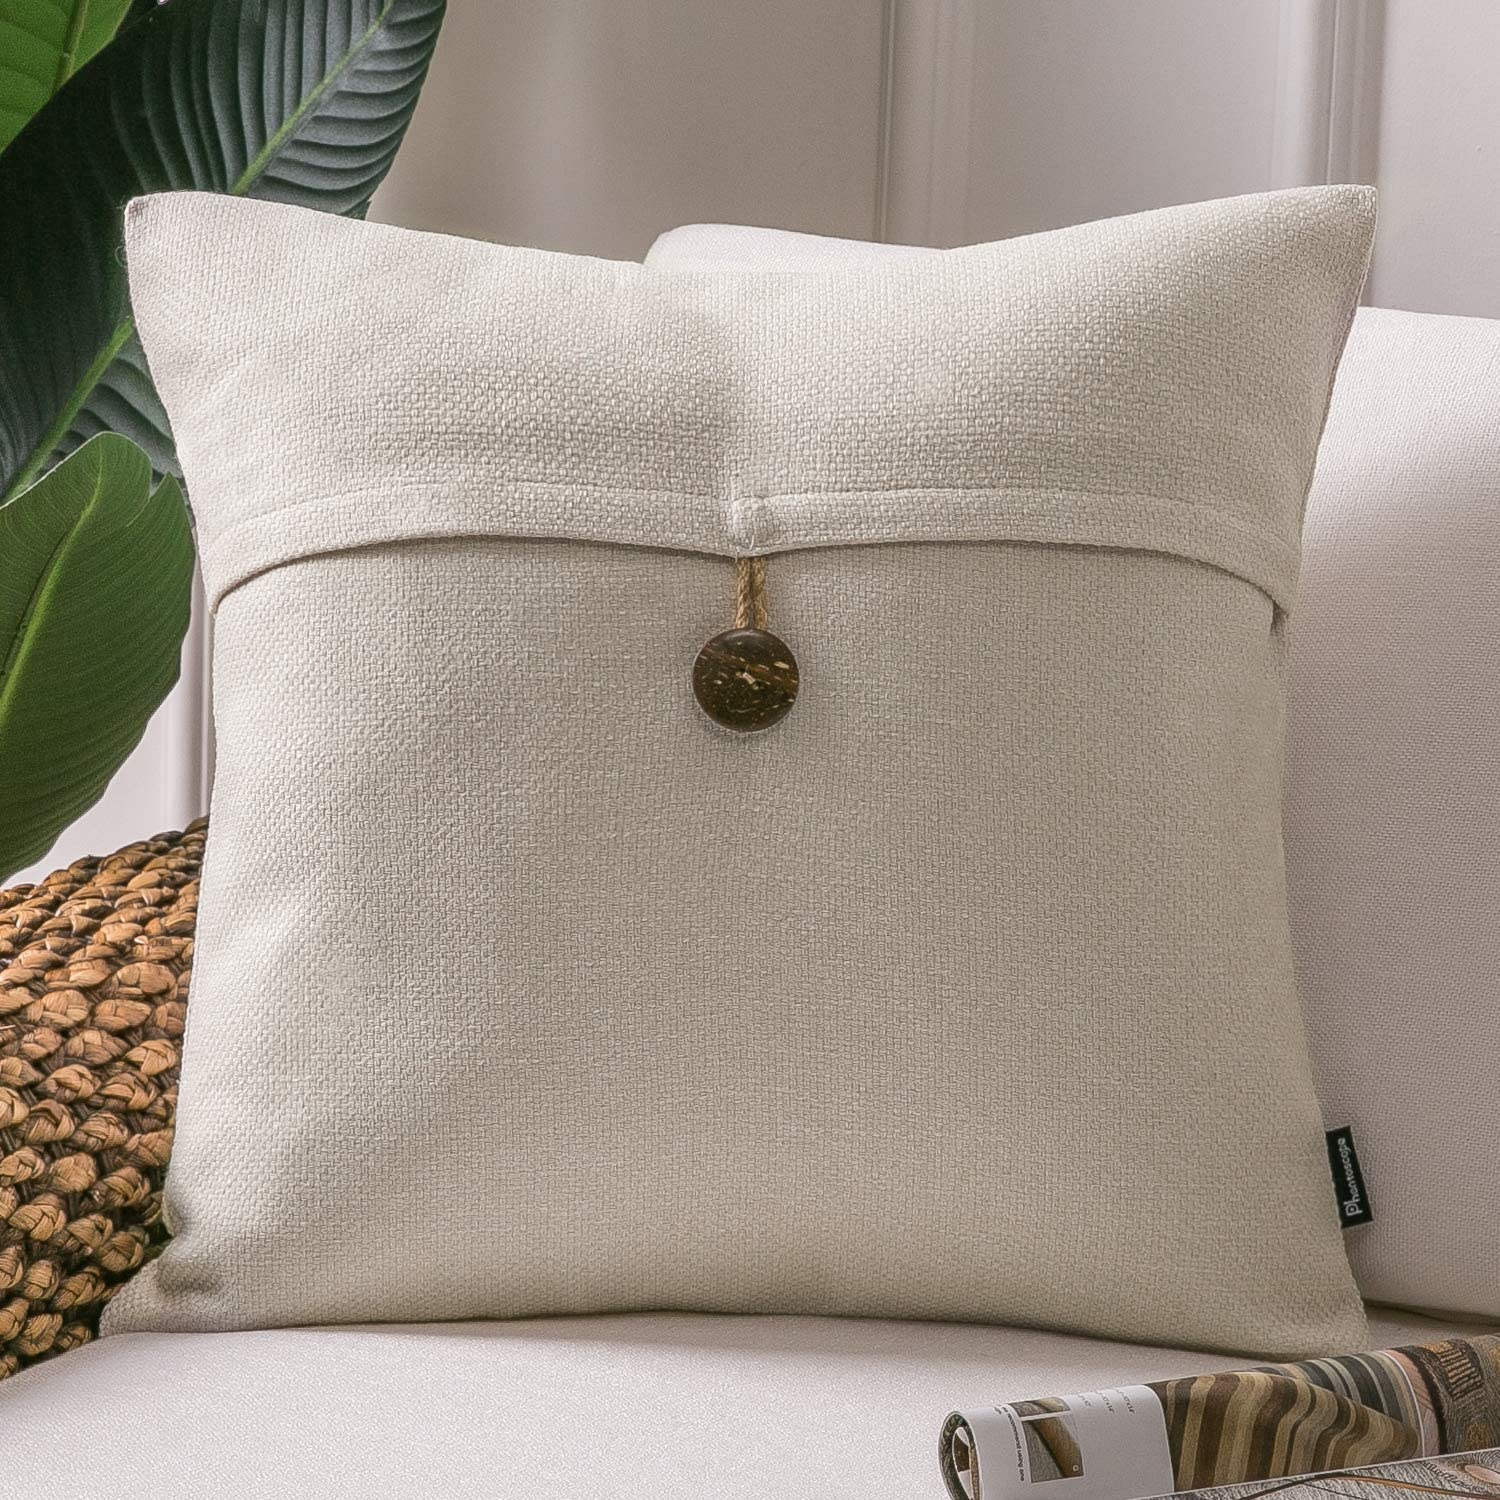 Phantoscope Farmhouse Throw Pillow Case Button Vintage Linen Decorative Soft Cushion Cover for Couch Bed Living Room and Office Chair, Off-White, 20 x 20 inches, 50 x 50 cm